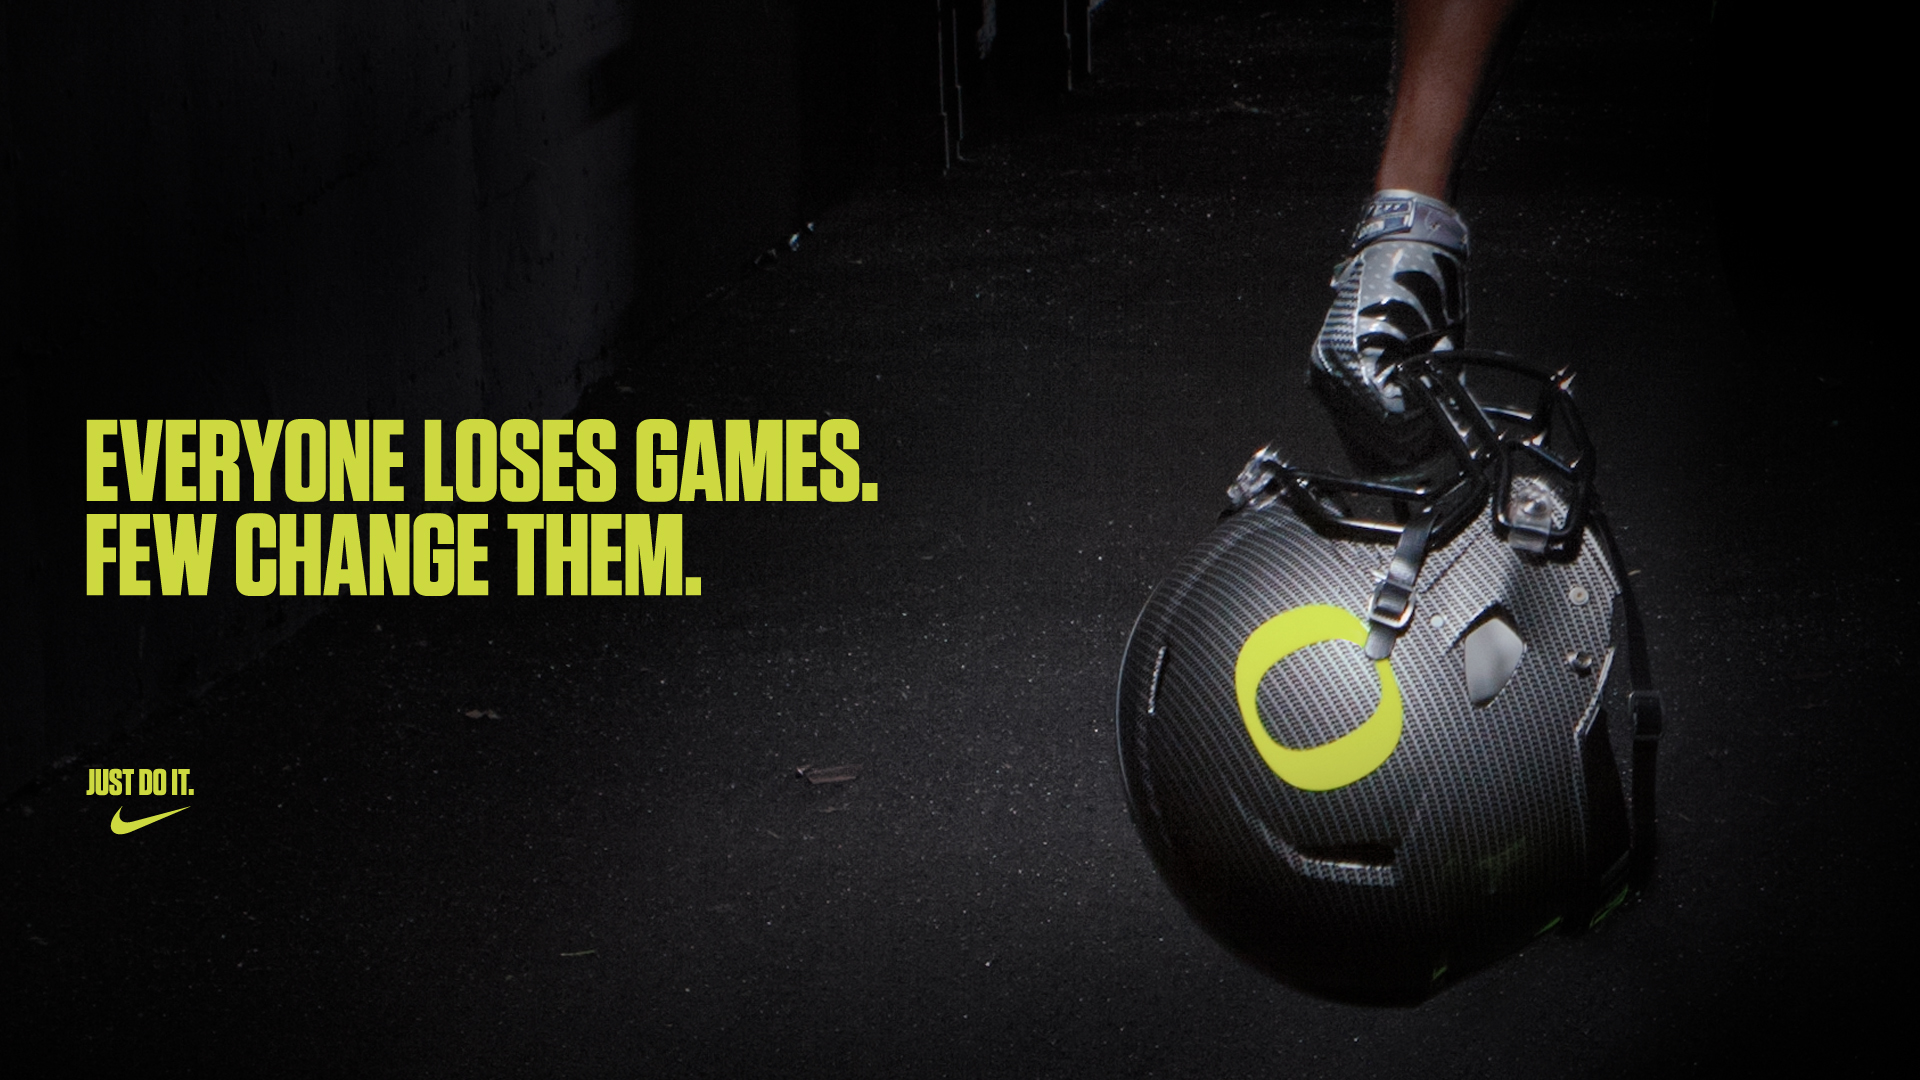 Nike Oregon Football Ad f5   F5toRefresh 1920x1080